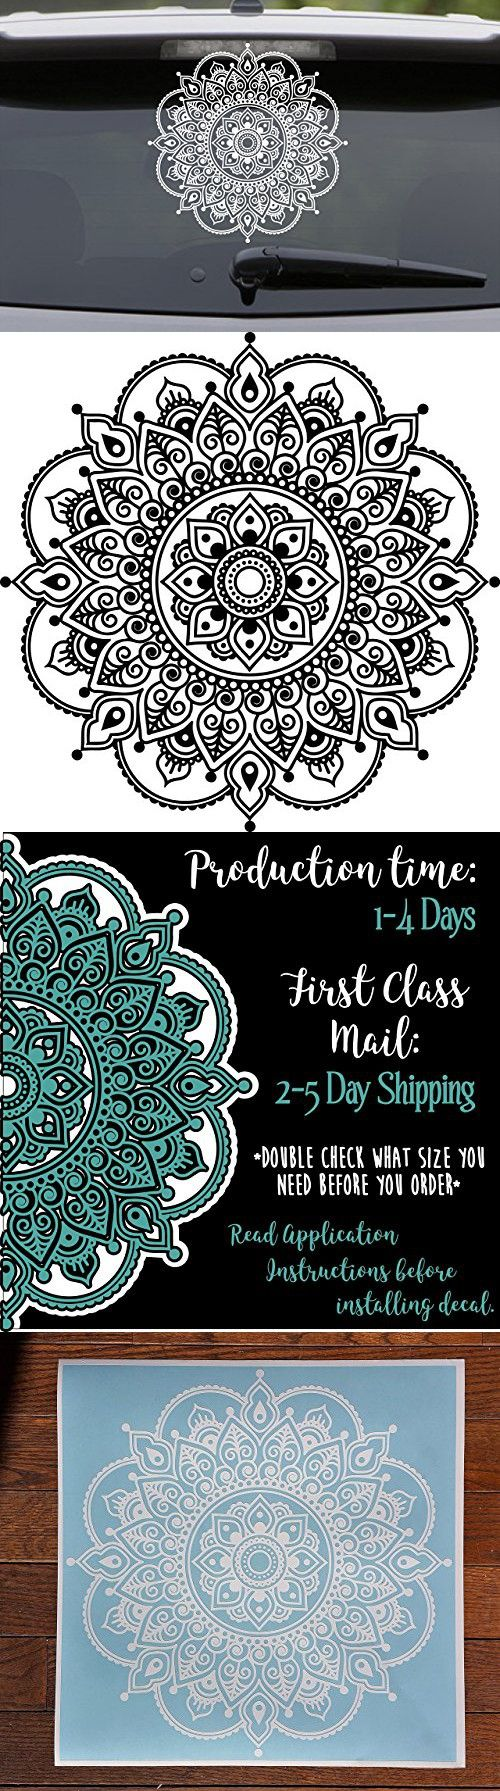 Car sticker family maker - Mandala Decal Flower Decal Car Decal Lacey Laptop Sticker Mandala Car Decal Floral Hippie Seed Of